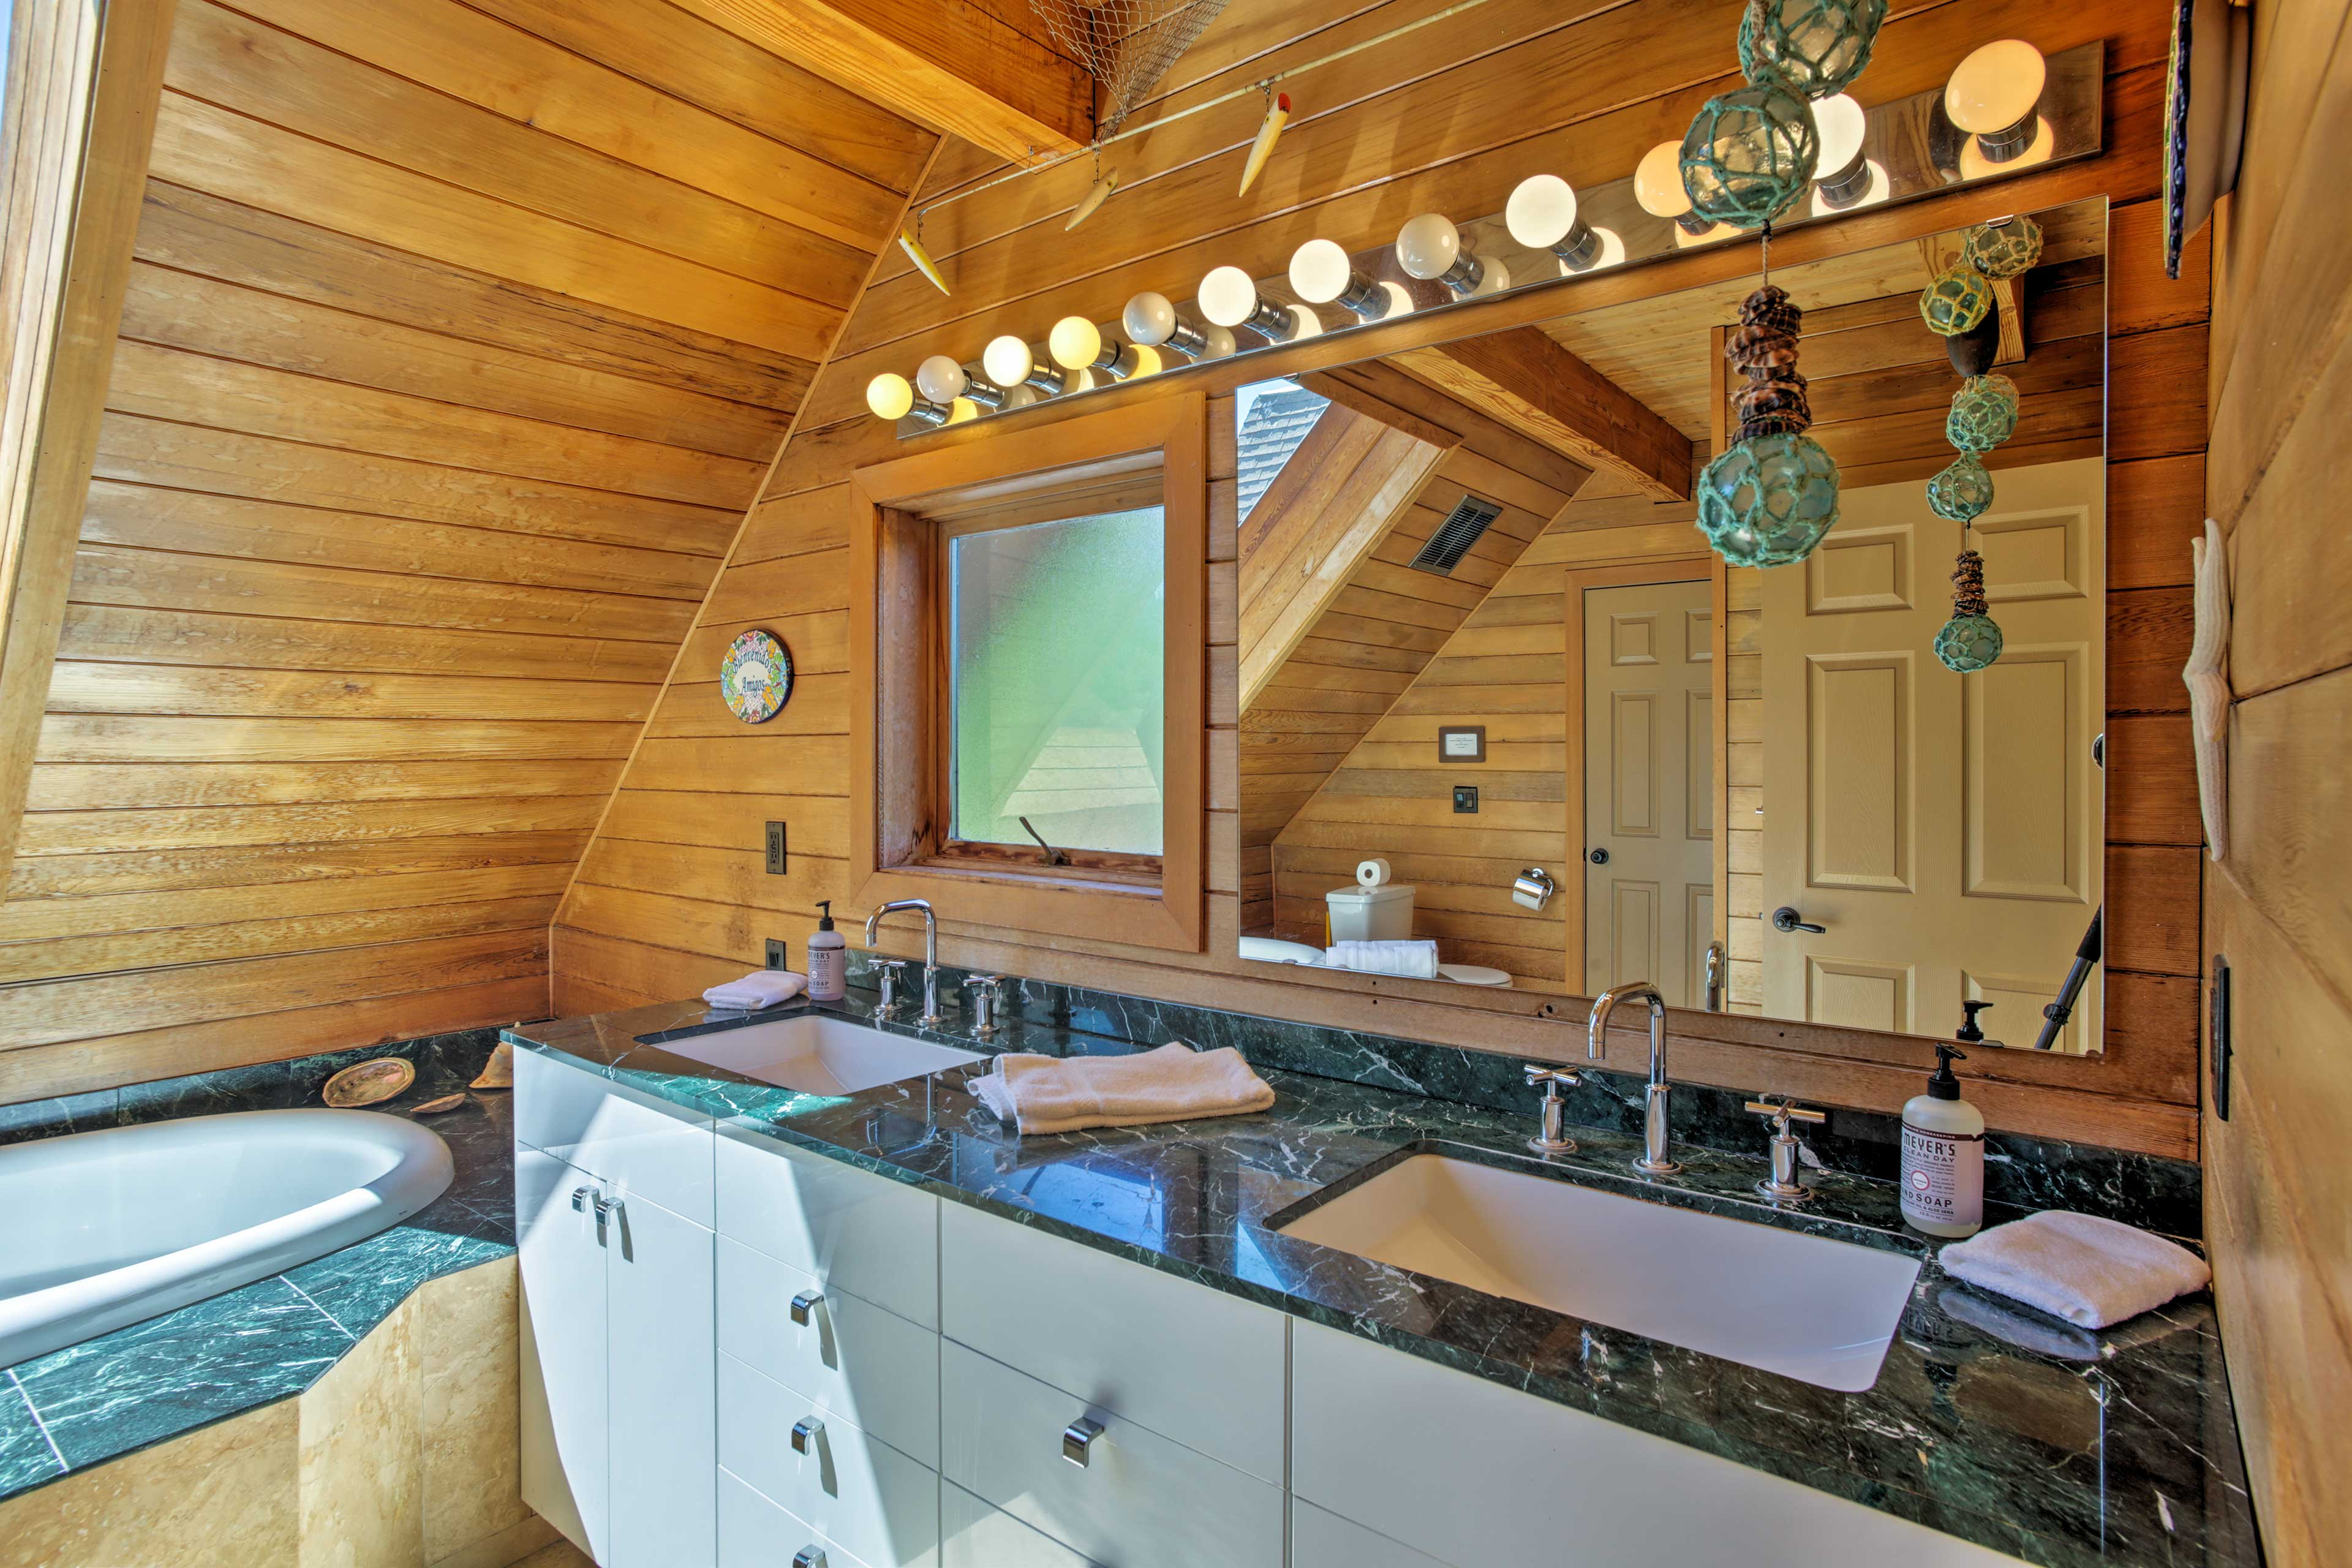 A luxurious bathroom has double sinks & ample storage space.